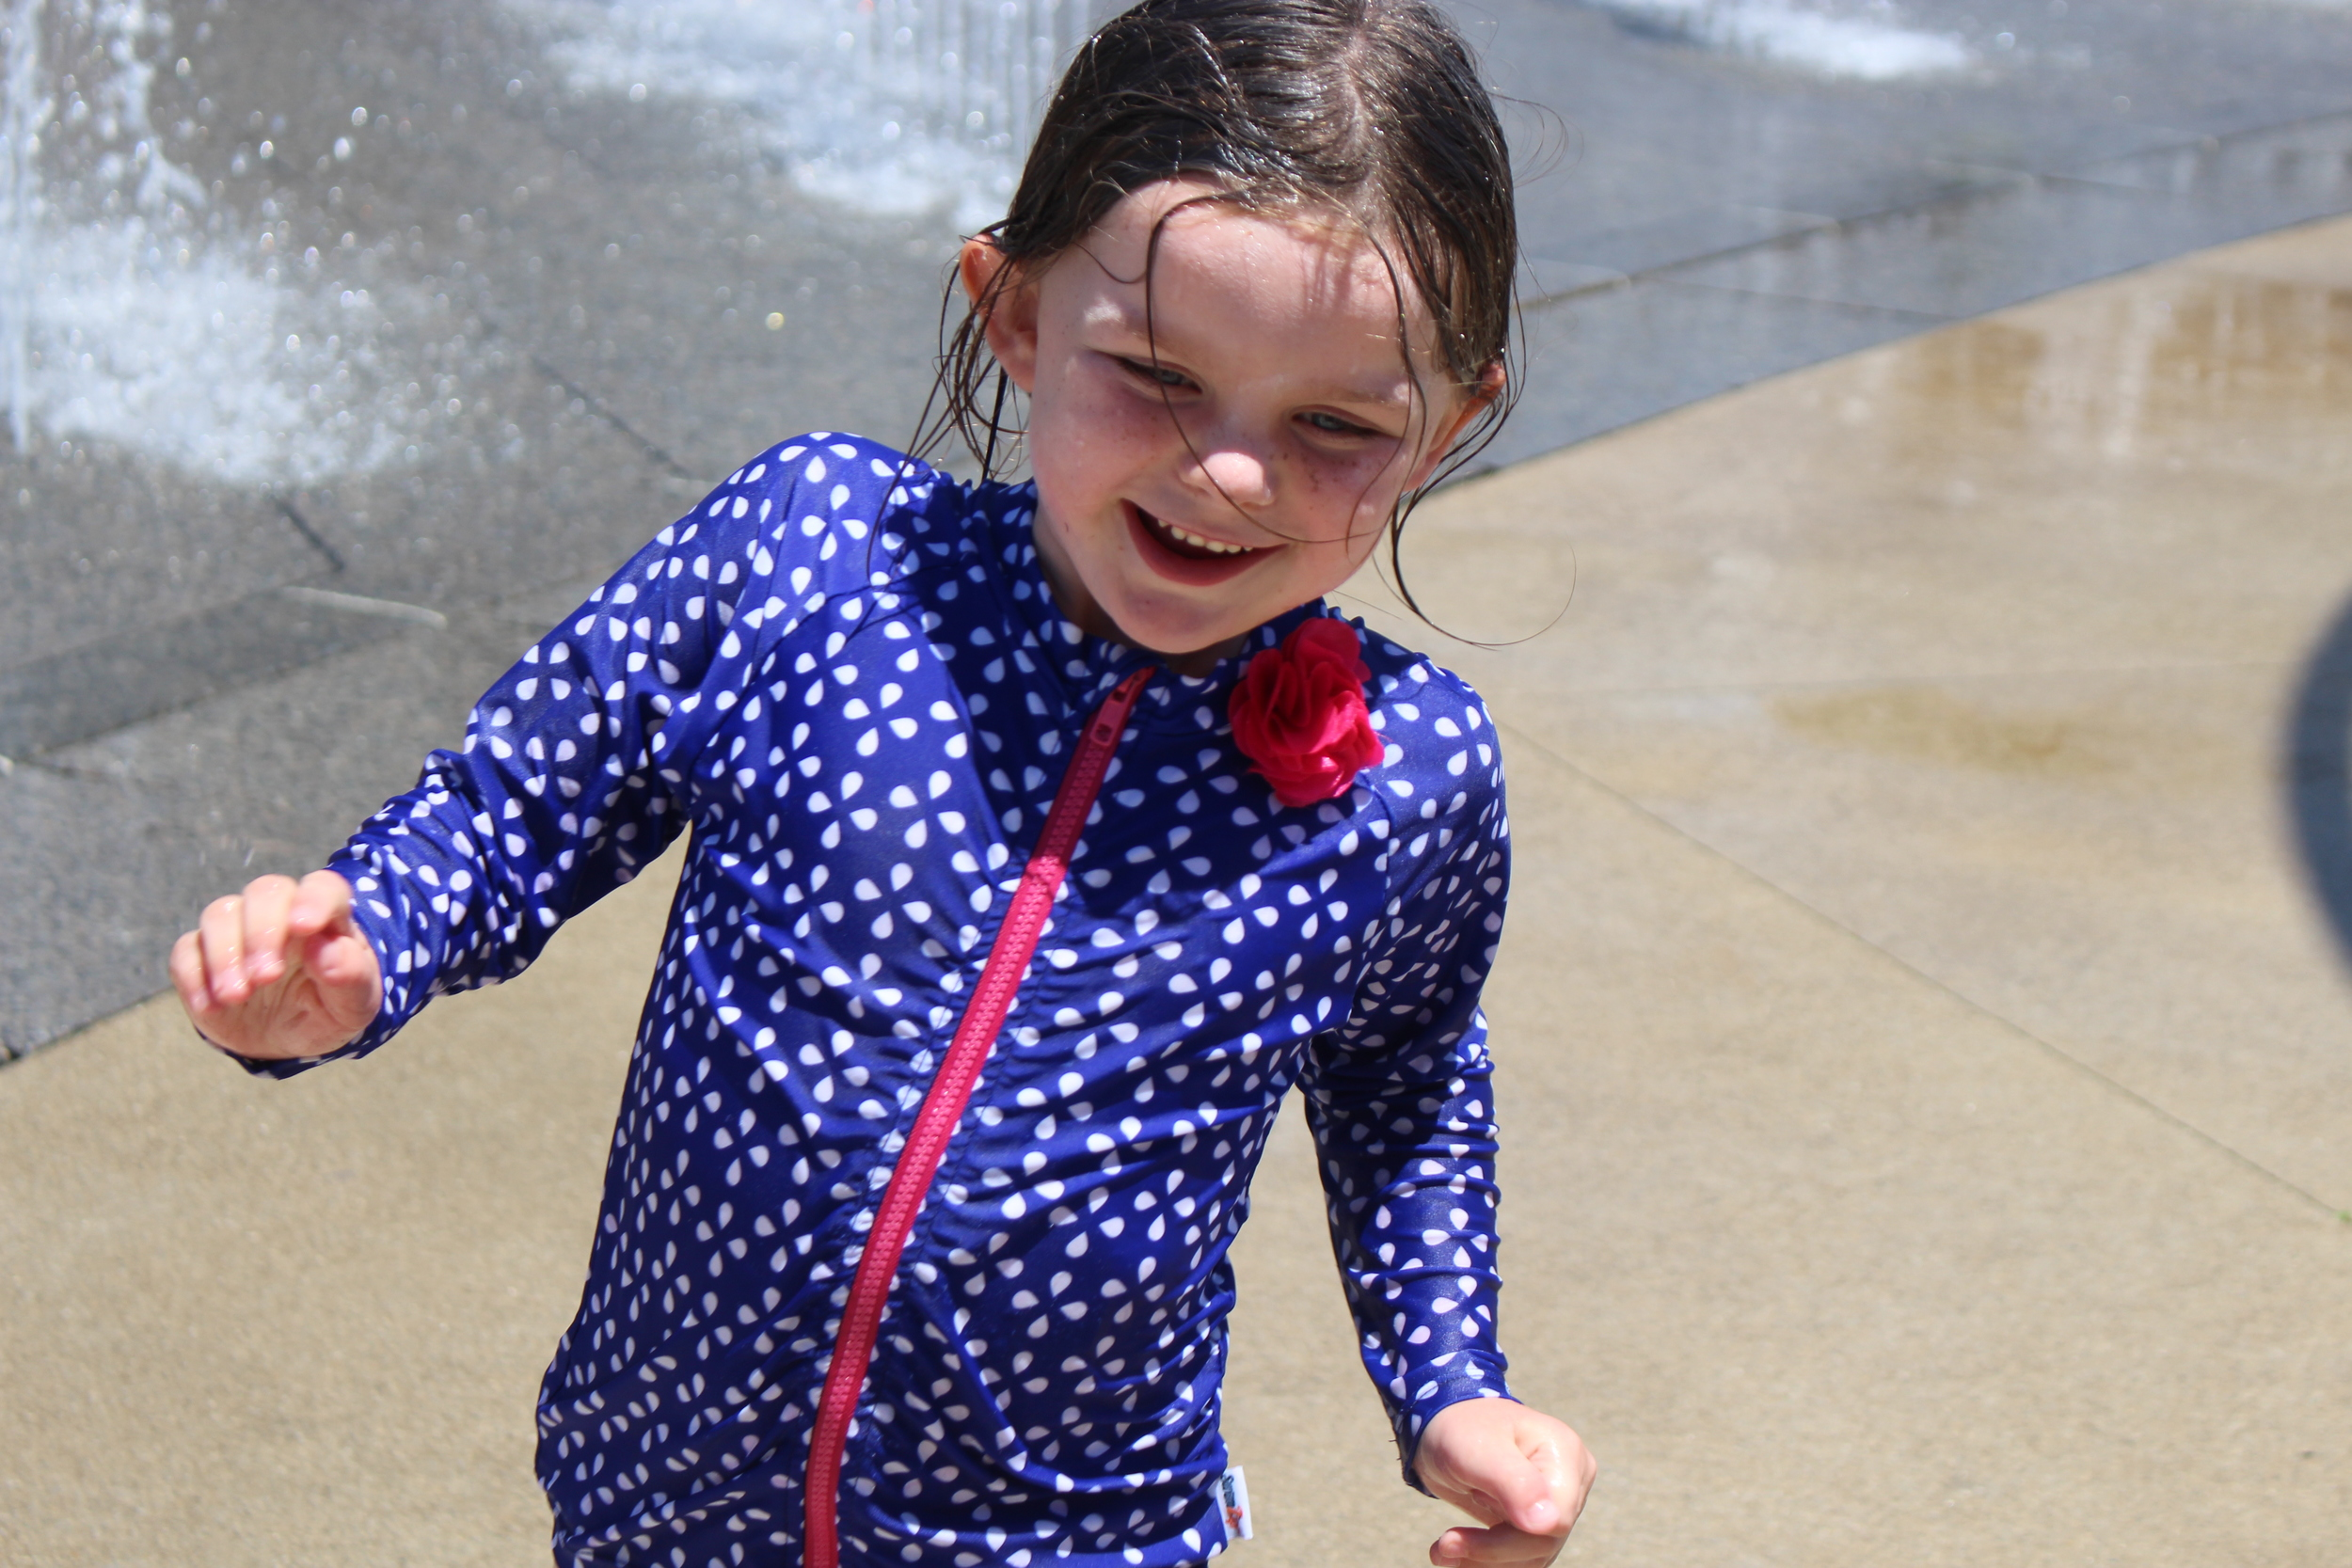 We love the Scioto Mile Fountain and we have visited a few times over the last few weeks. Lunch/Dinner at Milestone 229 and then splashing in the fountains is a family favorite activity.